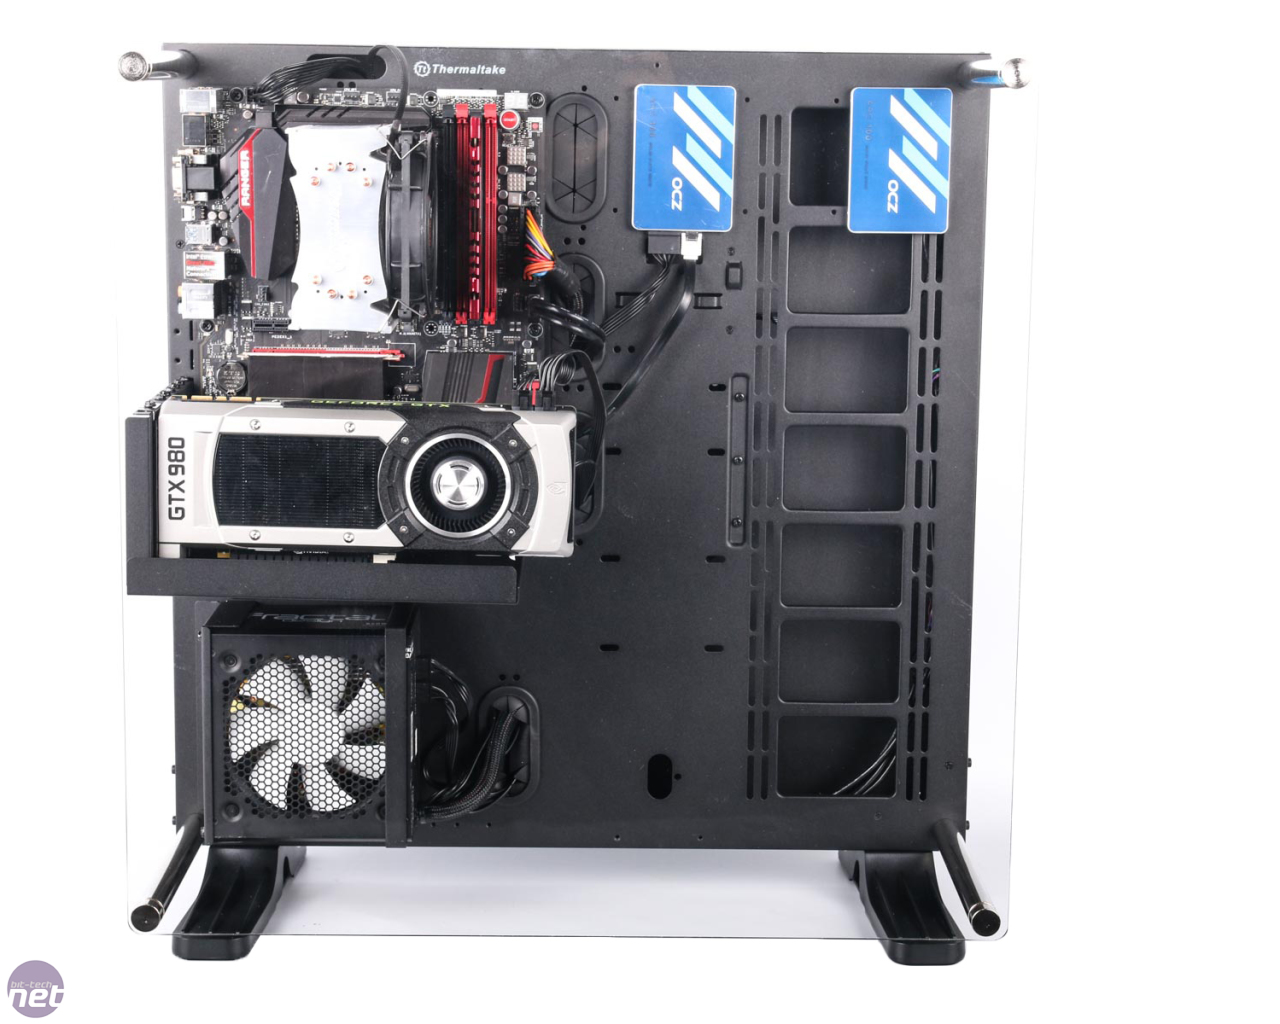 Thermaltake core p5 review thermaltake core p5 review conclusions